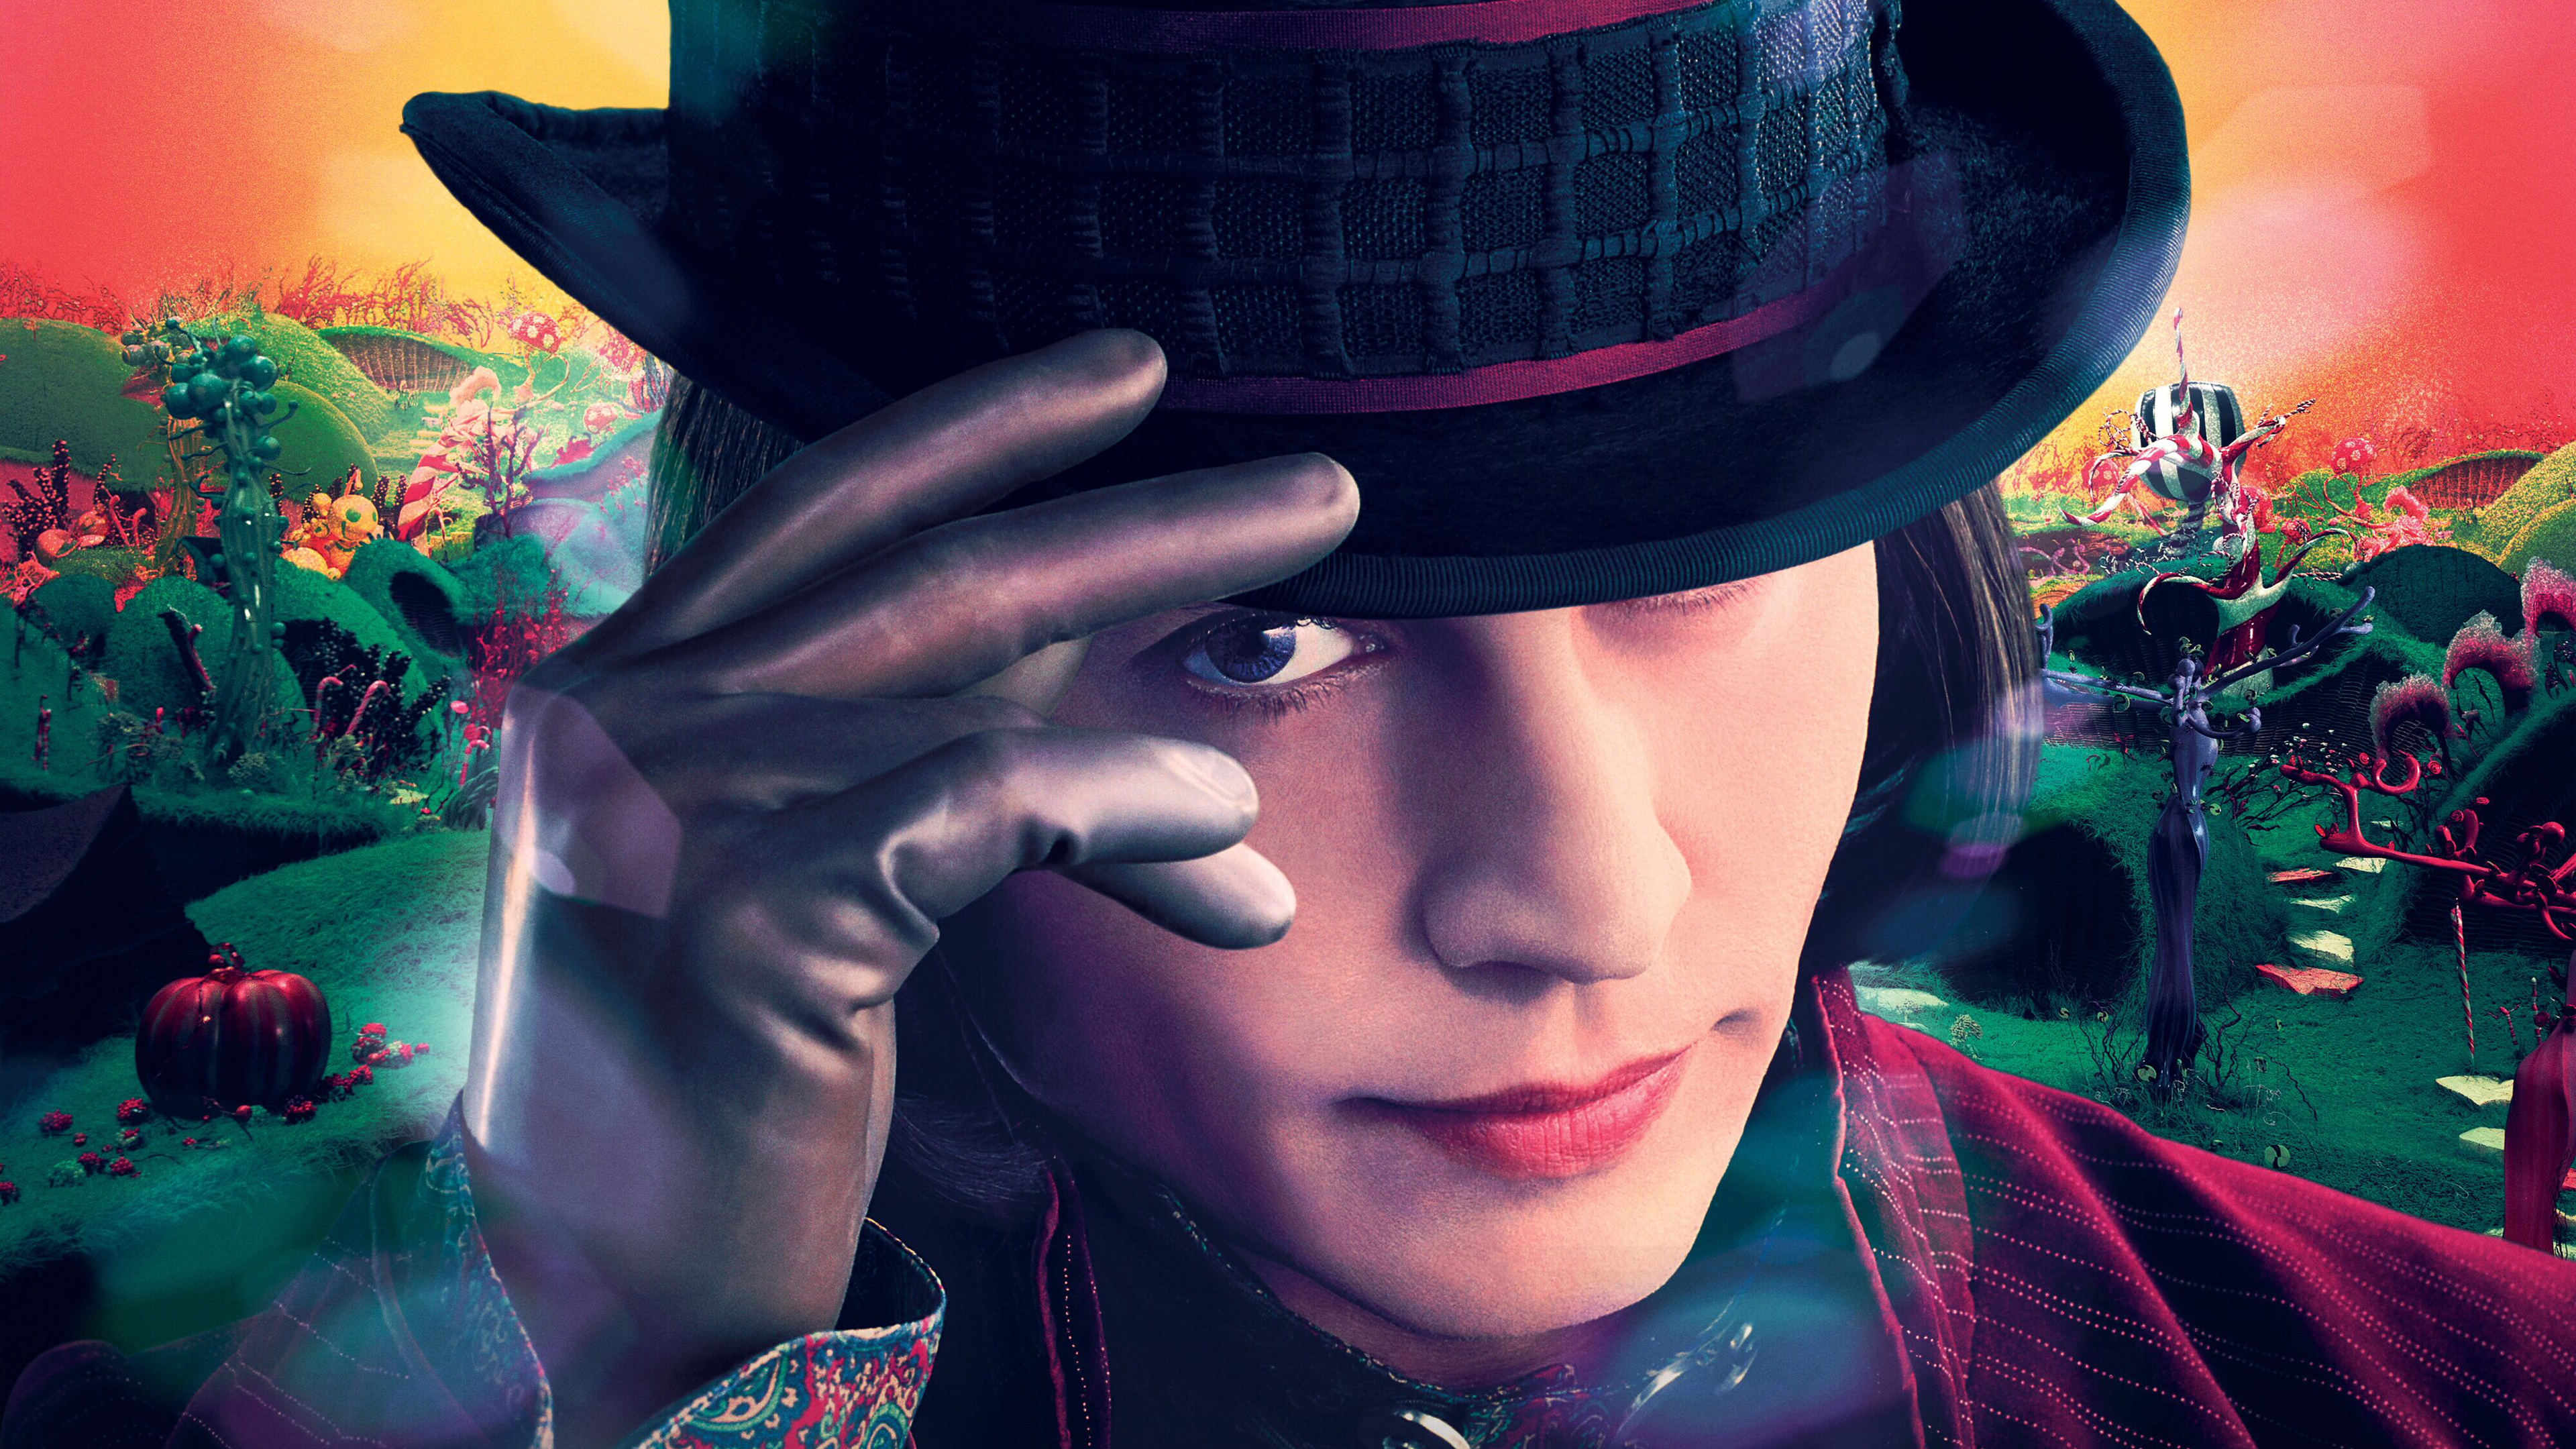 charlie and the chocolate factory 1539979627 - Charlie And The Chocolate Factory - movies wallpapers, johnny depp wallpapers, hd-wallpapers, 4k-wallpapers